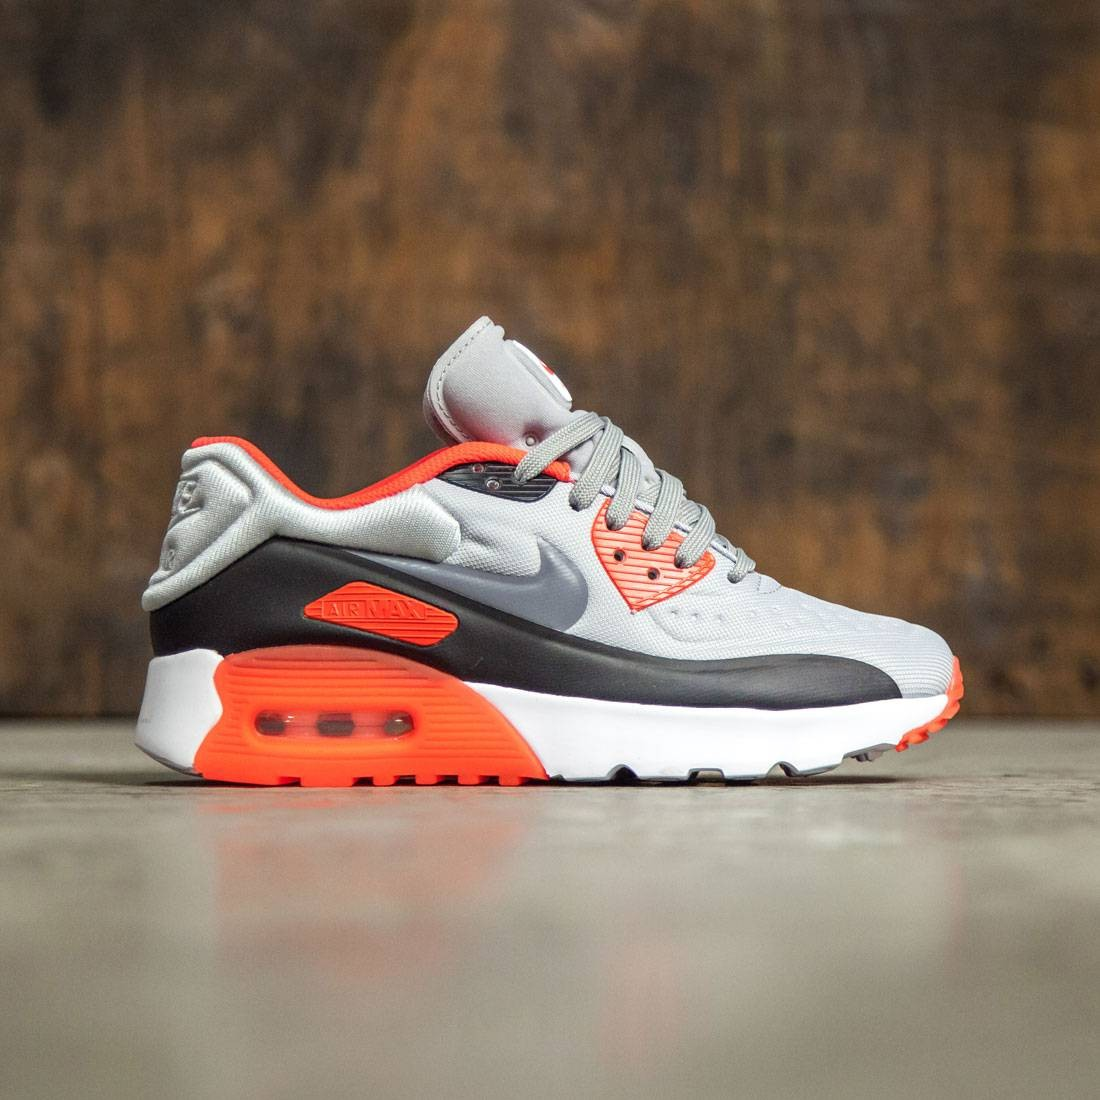 f42478cd04 Nike Big Kids Nike Air Max 90 Ultra Se (Gs) (wolf grey / cool grey-bright  crimson-black)